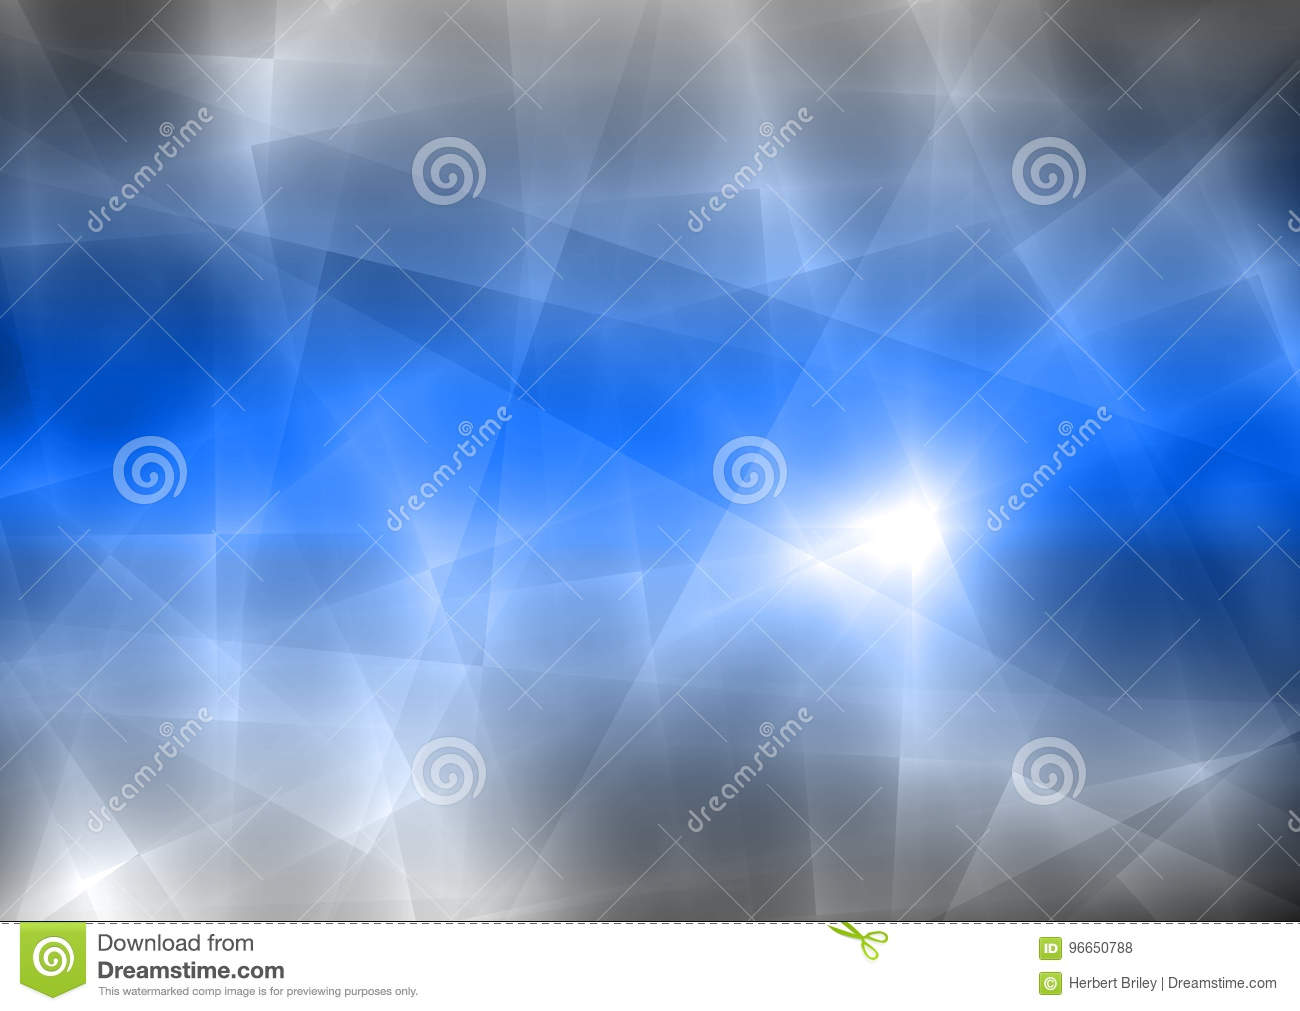 Blue and Black Abstract Transparent Background